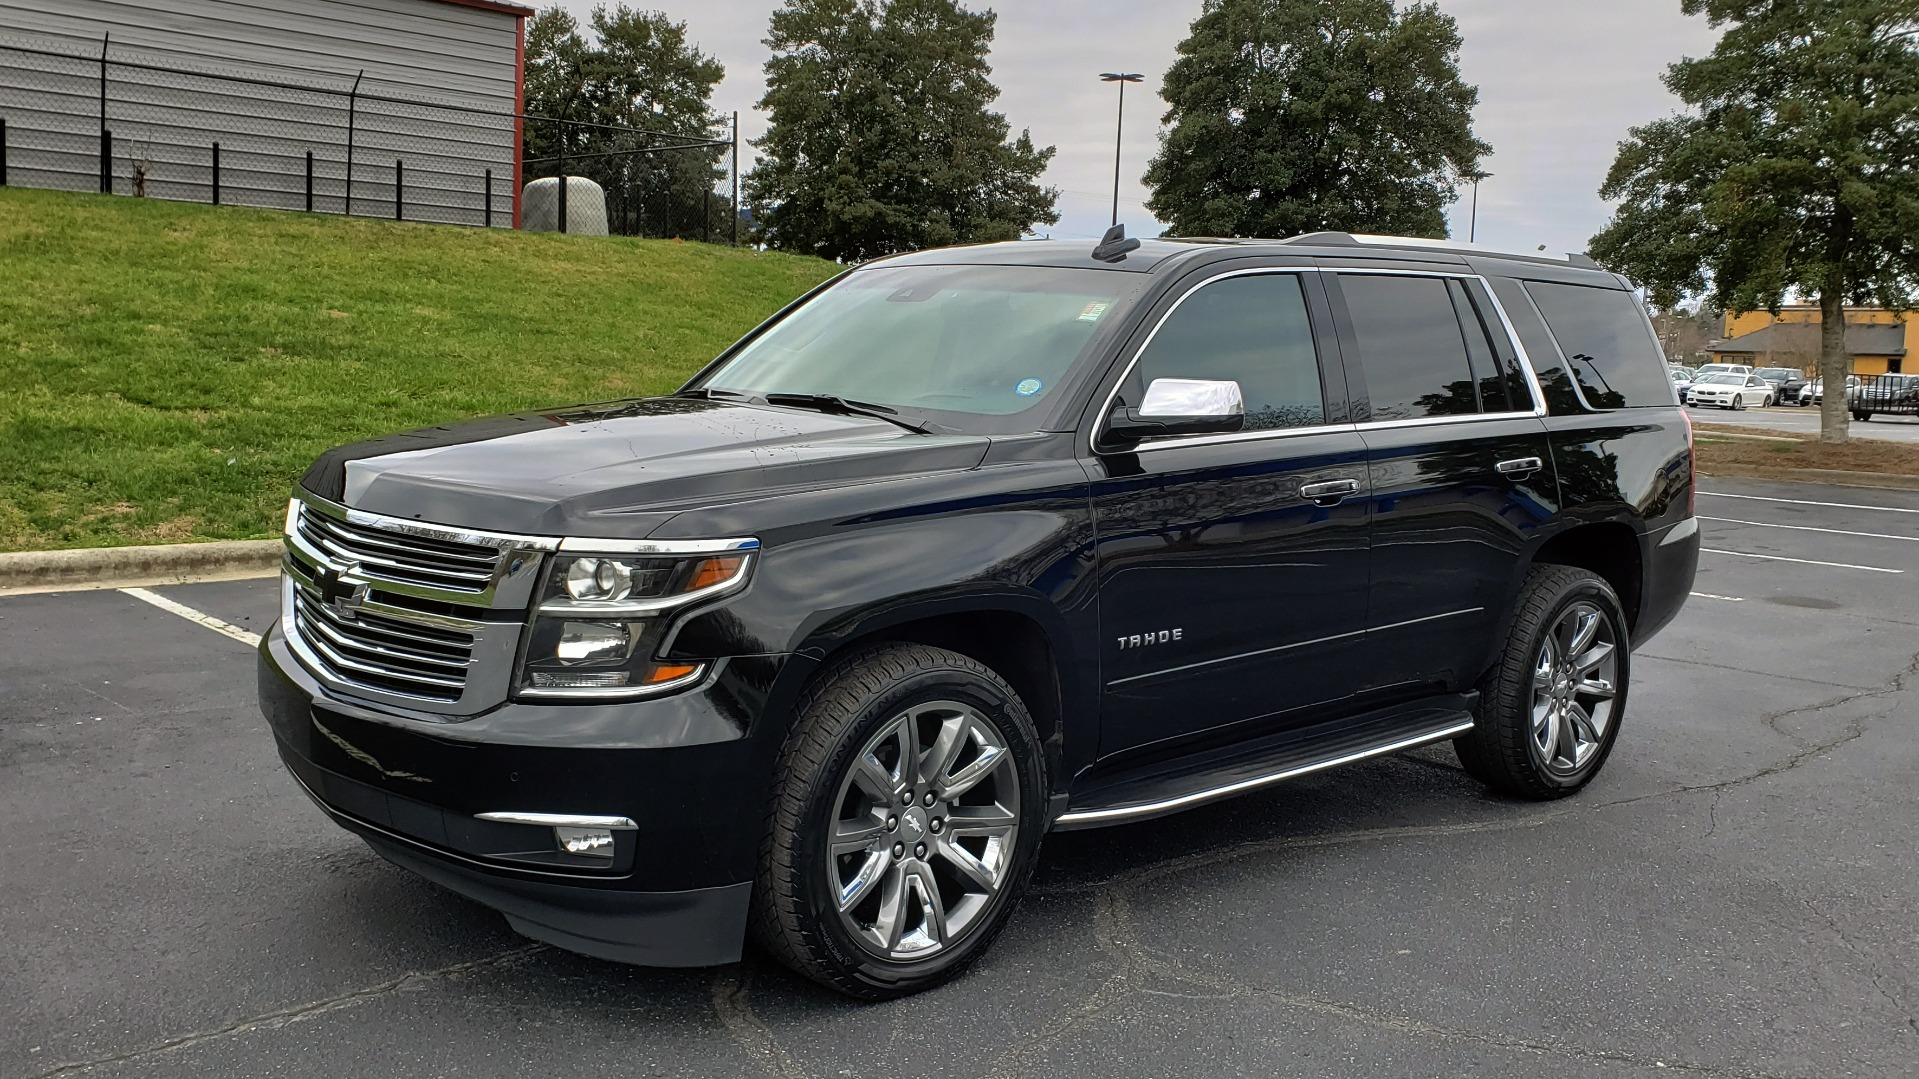 Used 2017 Chevrolet TAHOE PREMIER 4WD / NAV / SNRF / ENTERT / REARVIEW / 3-ROW for sale Sold at Formula Imports in Charlotte NC 28227 1